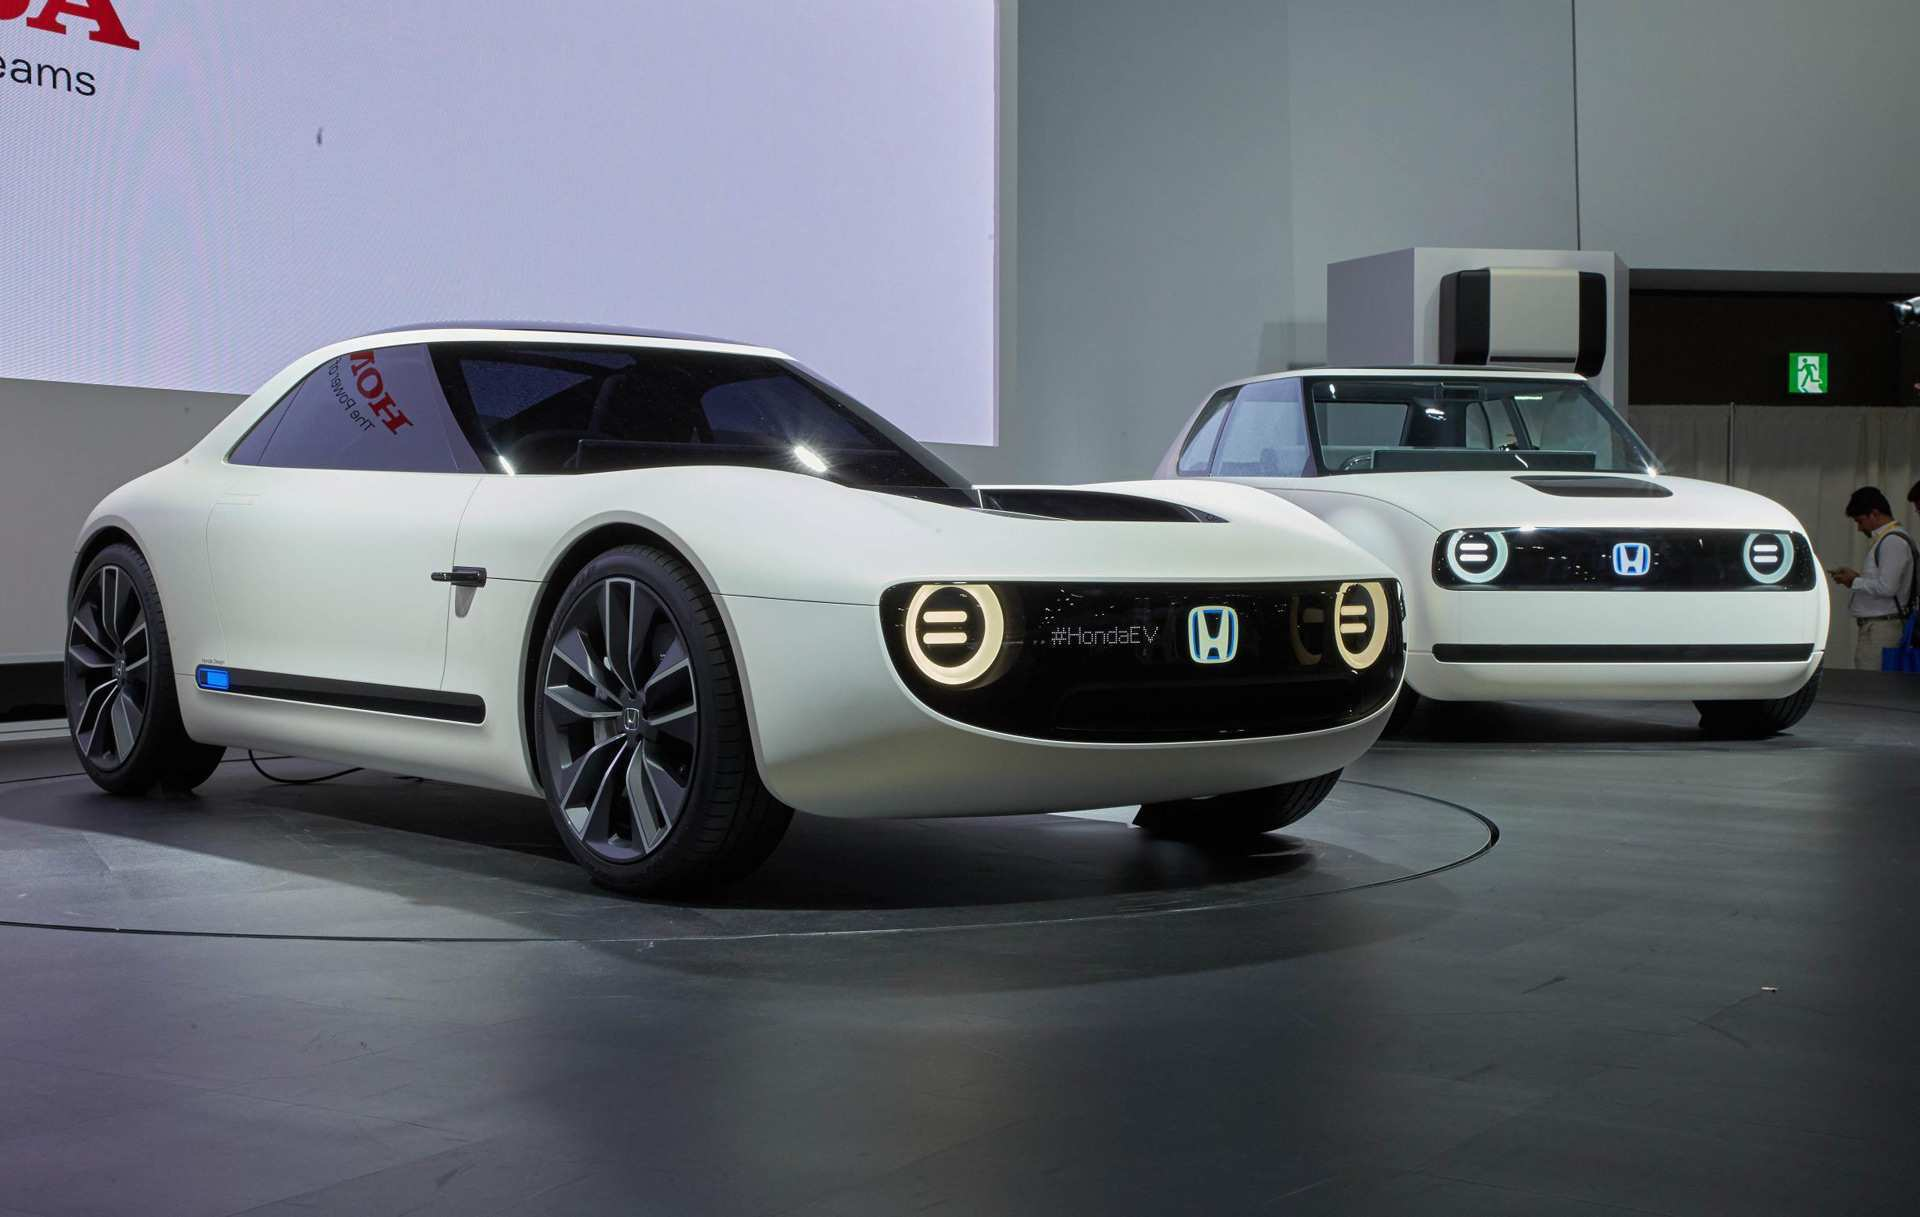 75 The Best Honda Electric Car 2020 New Model And Performance